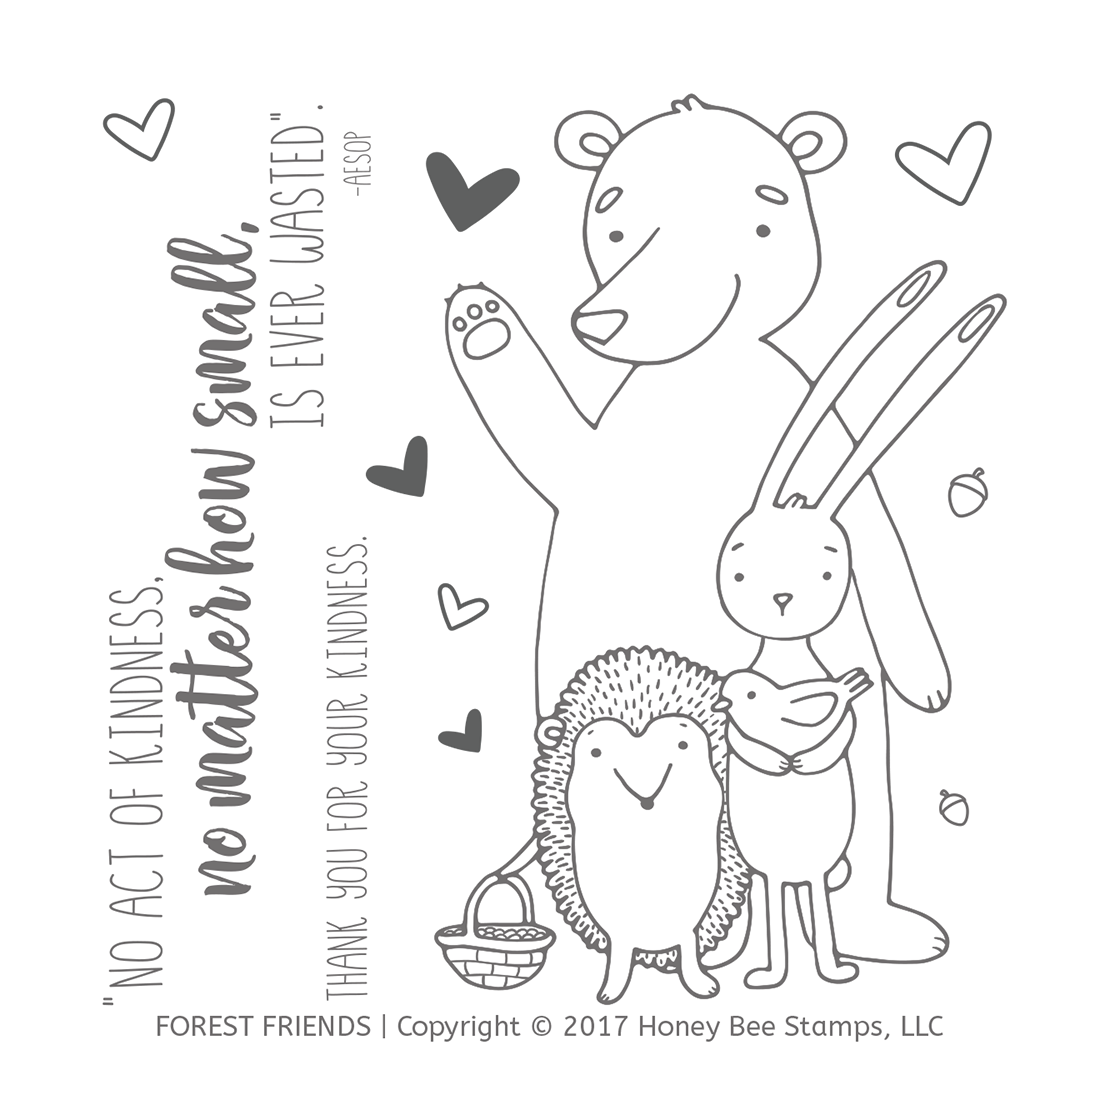 Honeybee Bee Stamps - Forest Friends | 4x4 Stamp Set